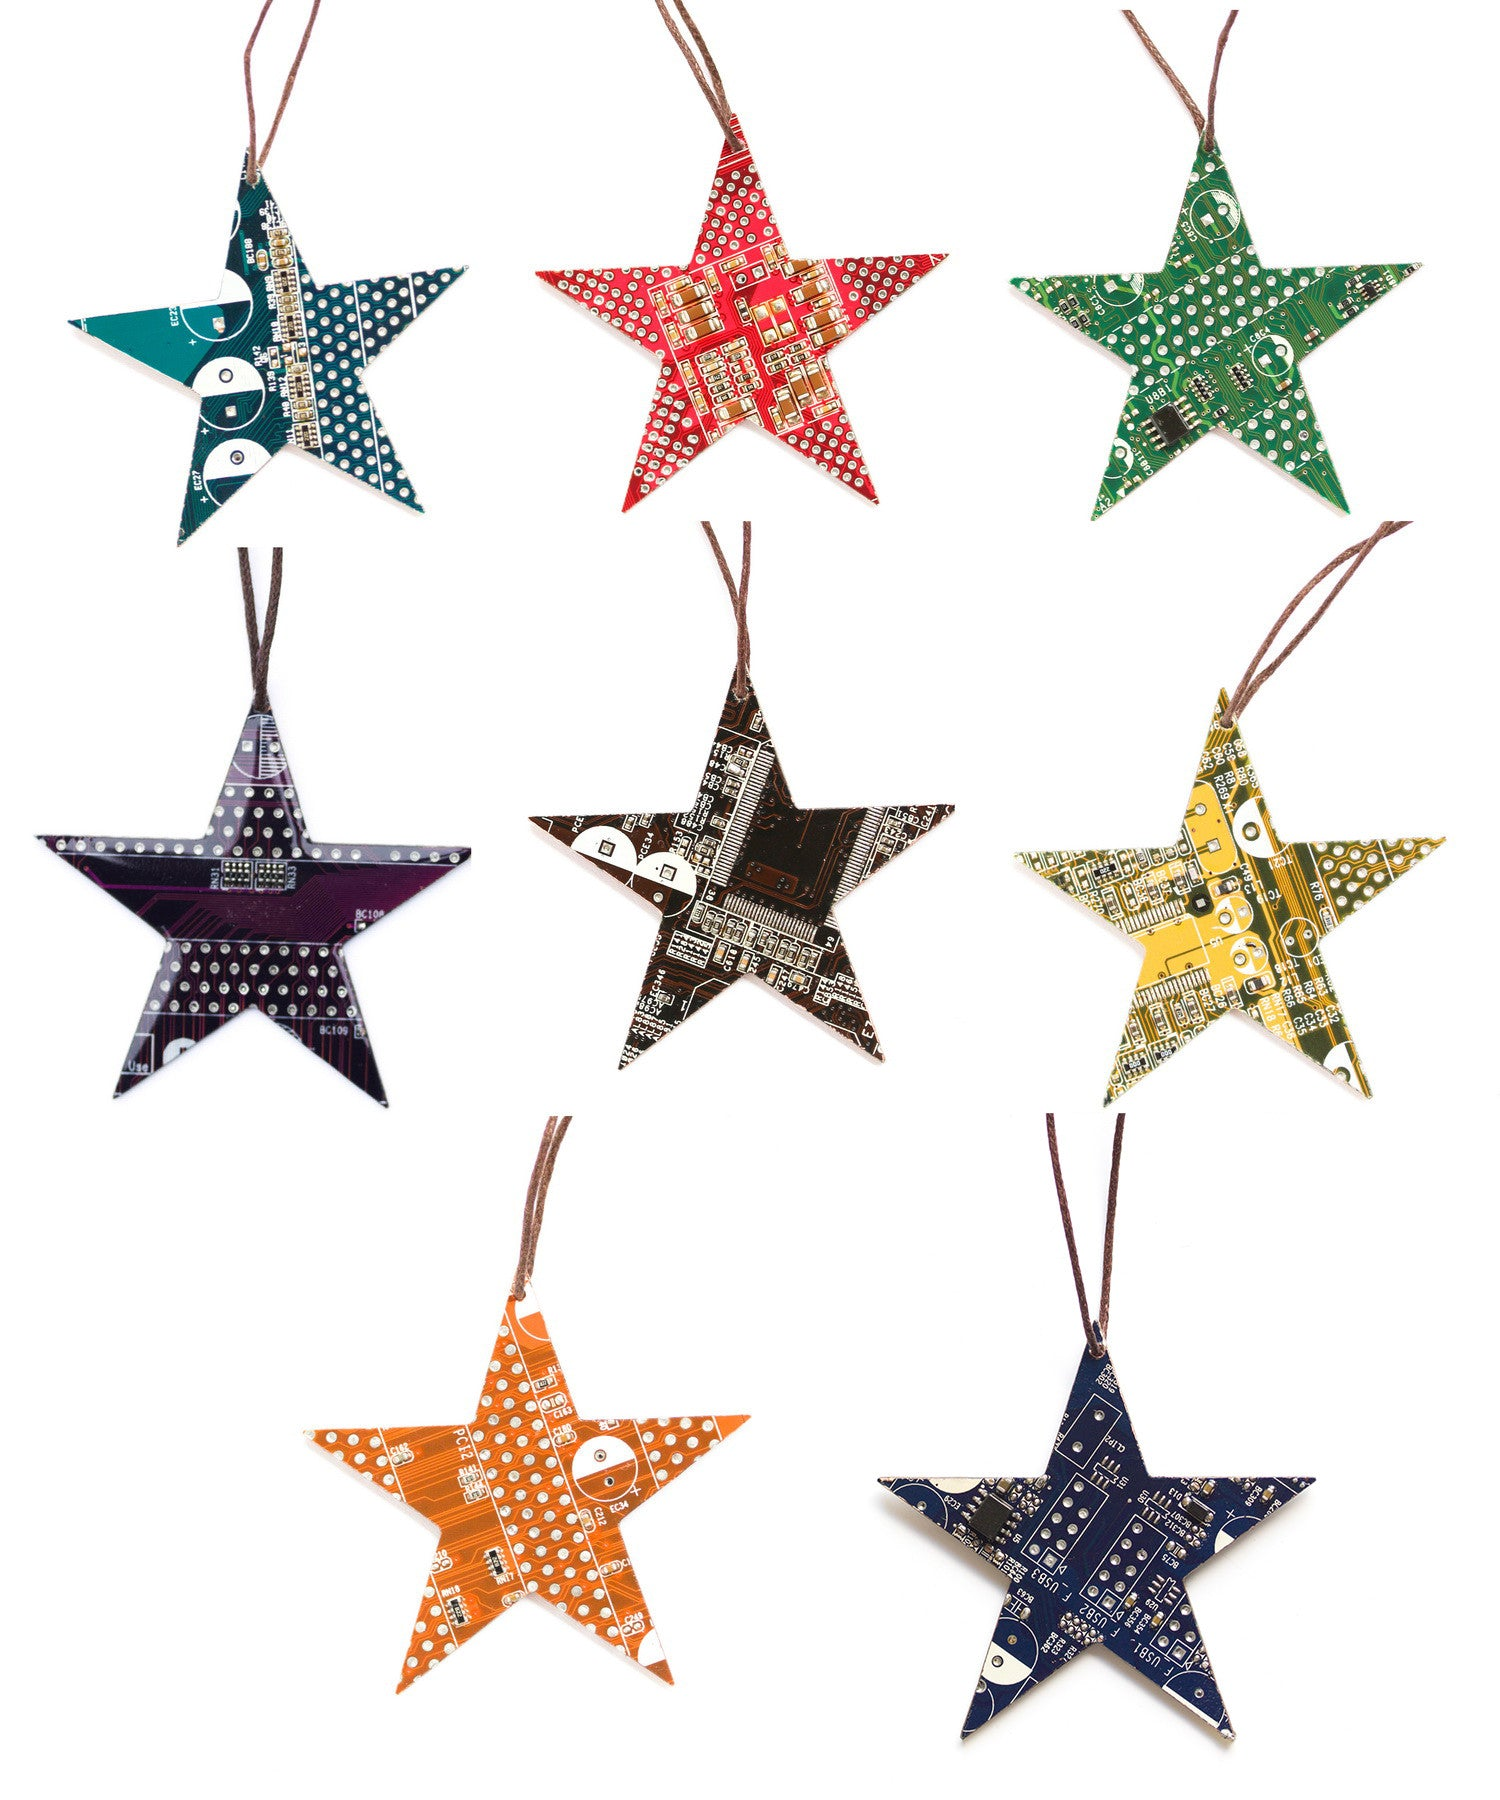 Star Christmas Tree ornament - recomputing